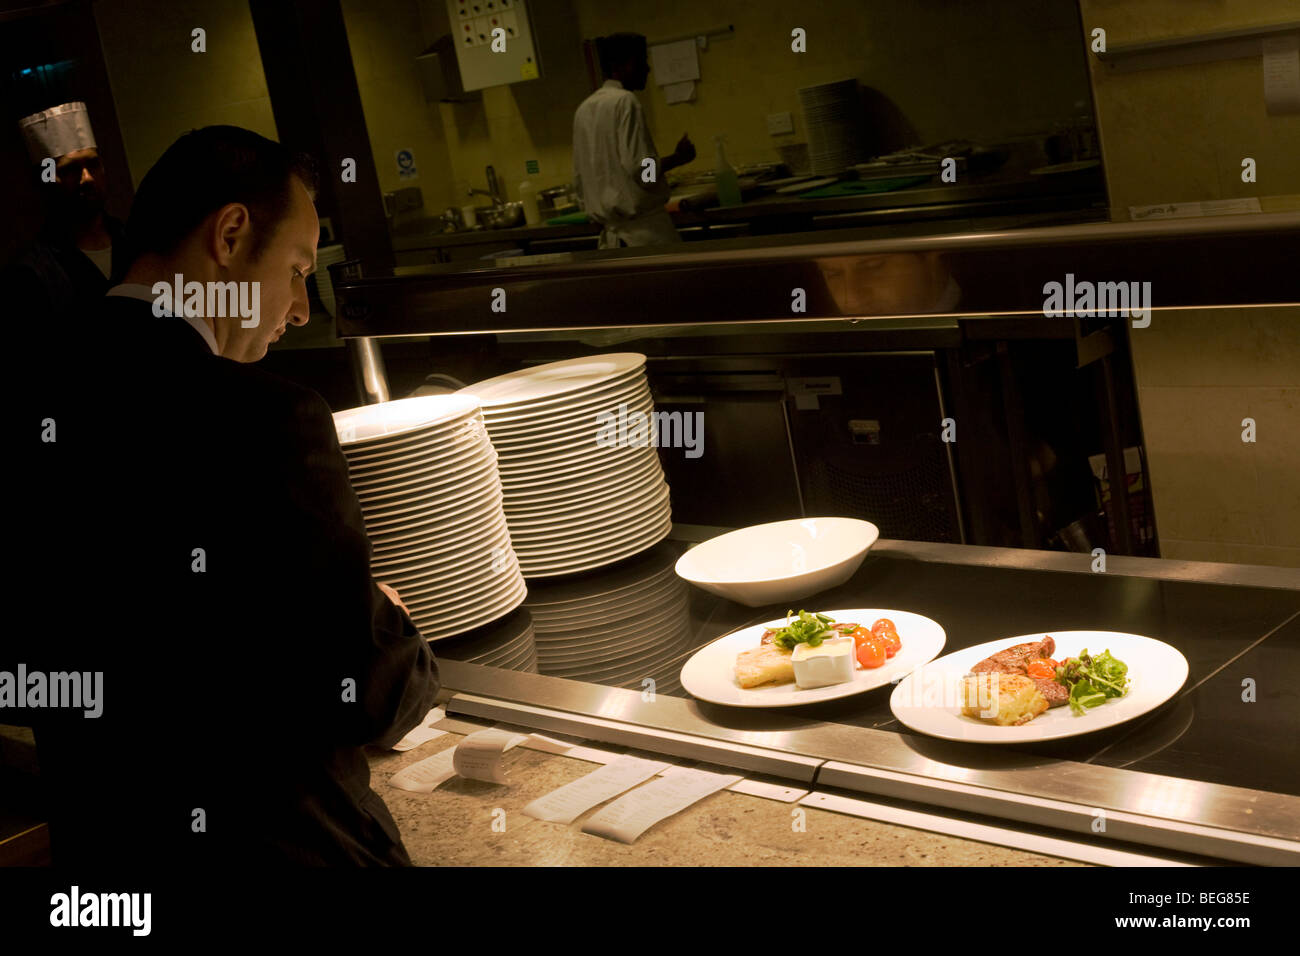 A Head Waiter is about to take finished dishes during service in the Vivre restaurant in Heathrow Airport's - Stock Image